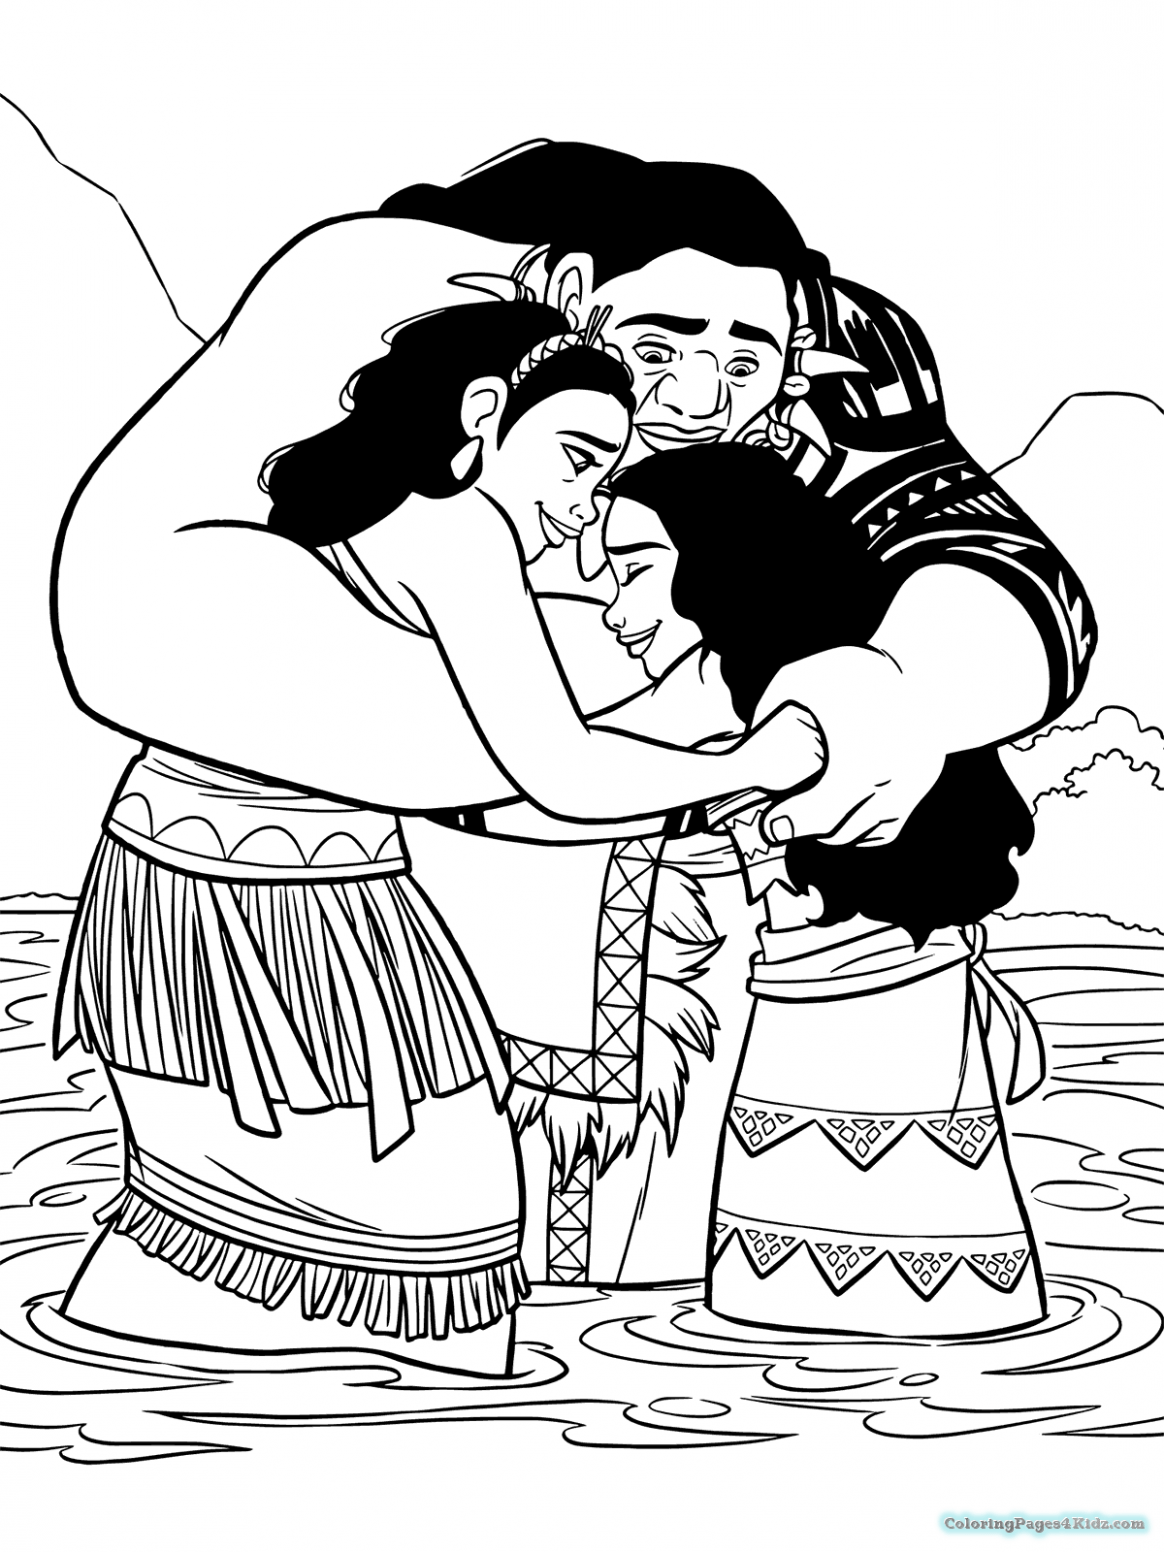 coloring pages for girls moana moana malvorlagen vaiana ausmalbilder ausmalbilder girls for pages moana coloring